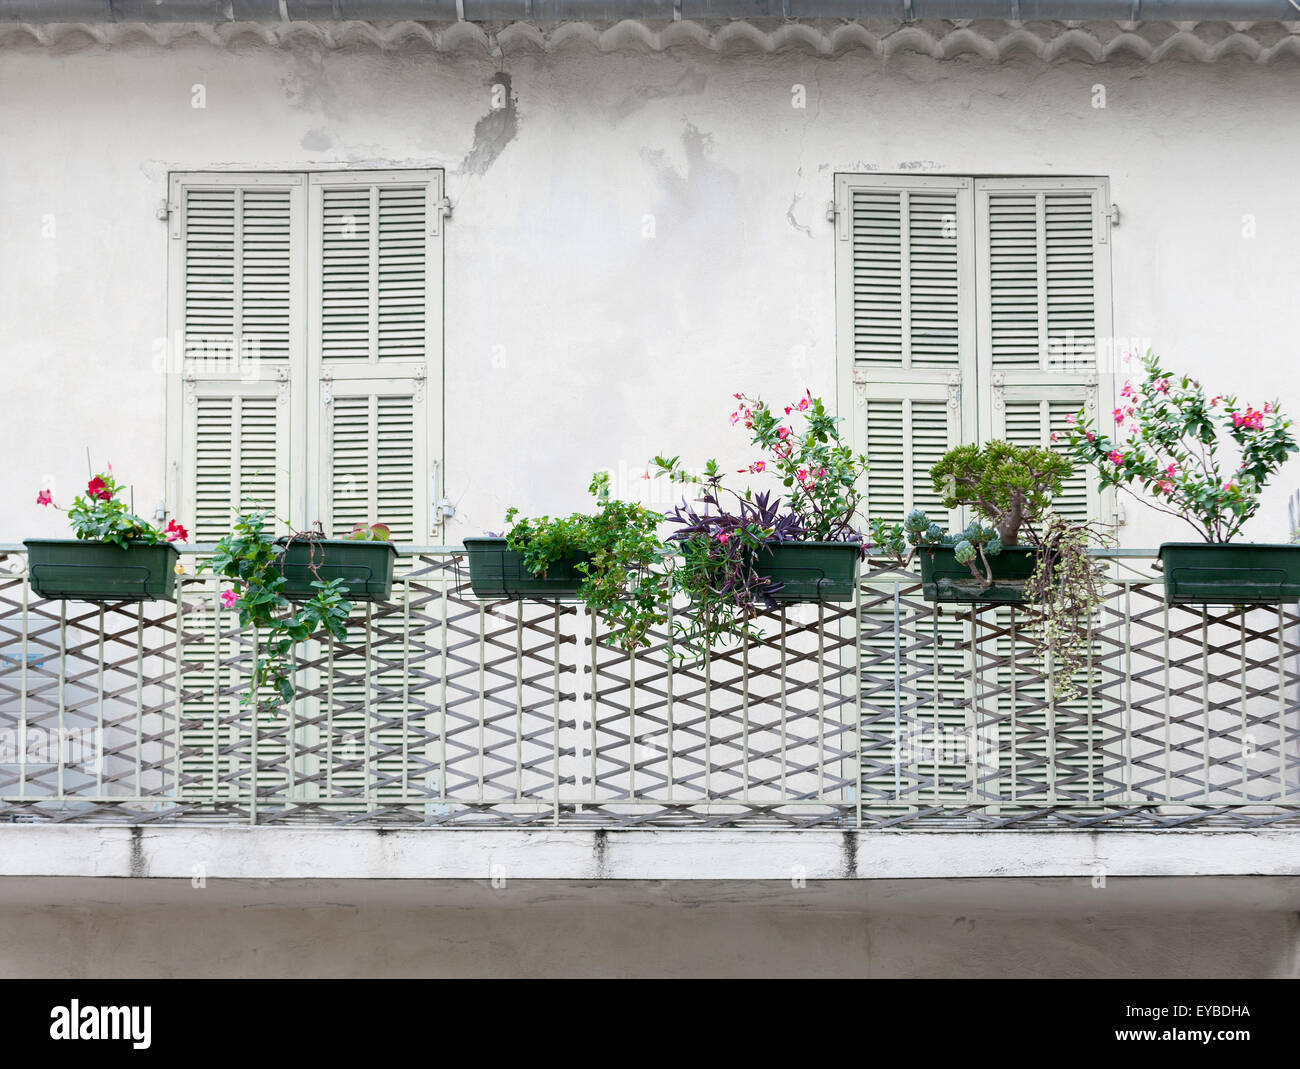 French balcony with closed doors and flower boxes on old house in Villefranche-sur-Mer, France. - Stock Image